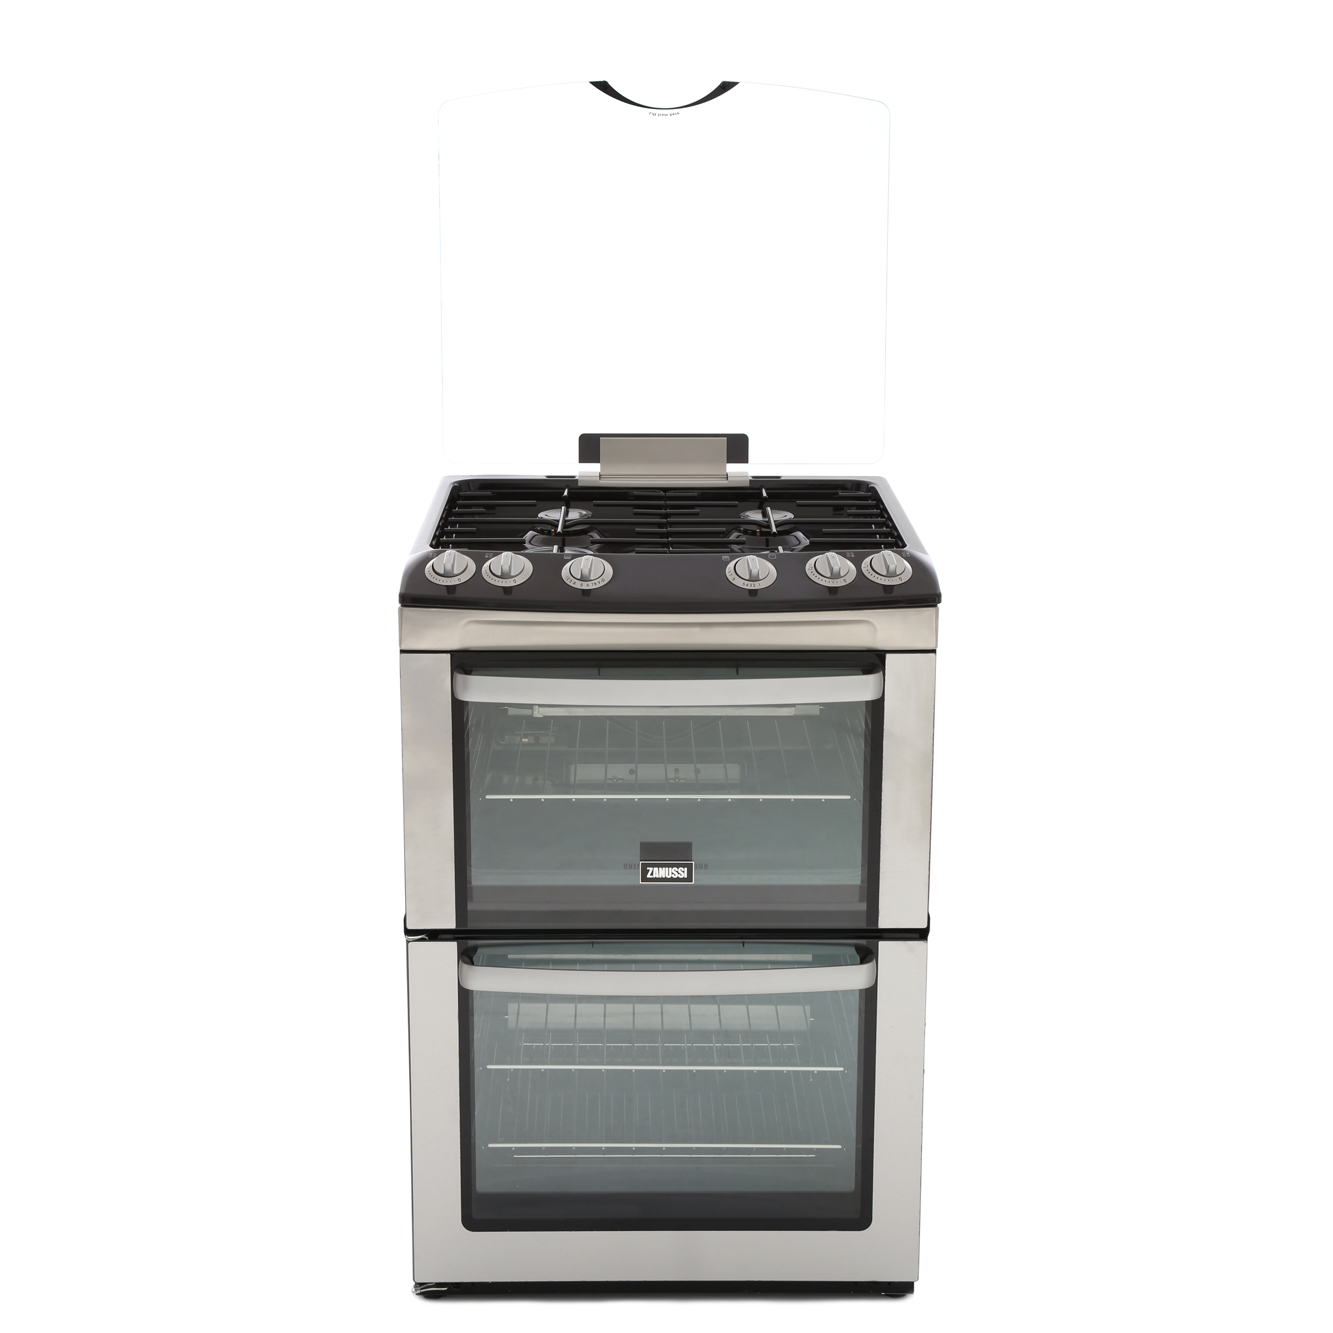 Zanussi ZCG669GX Gas Cooker with Double Oven